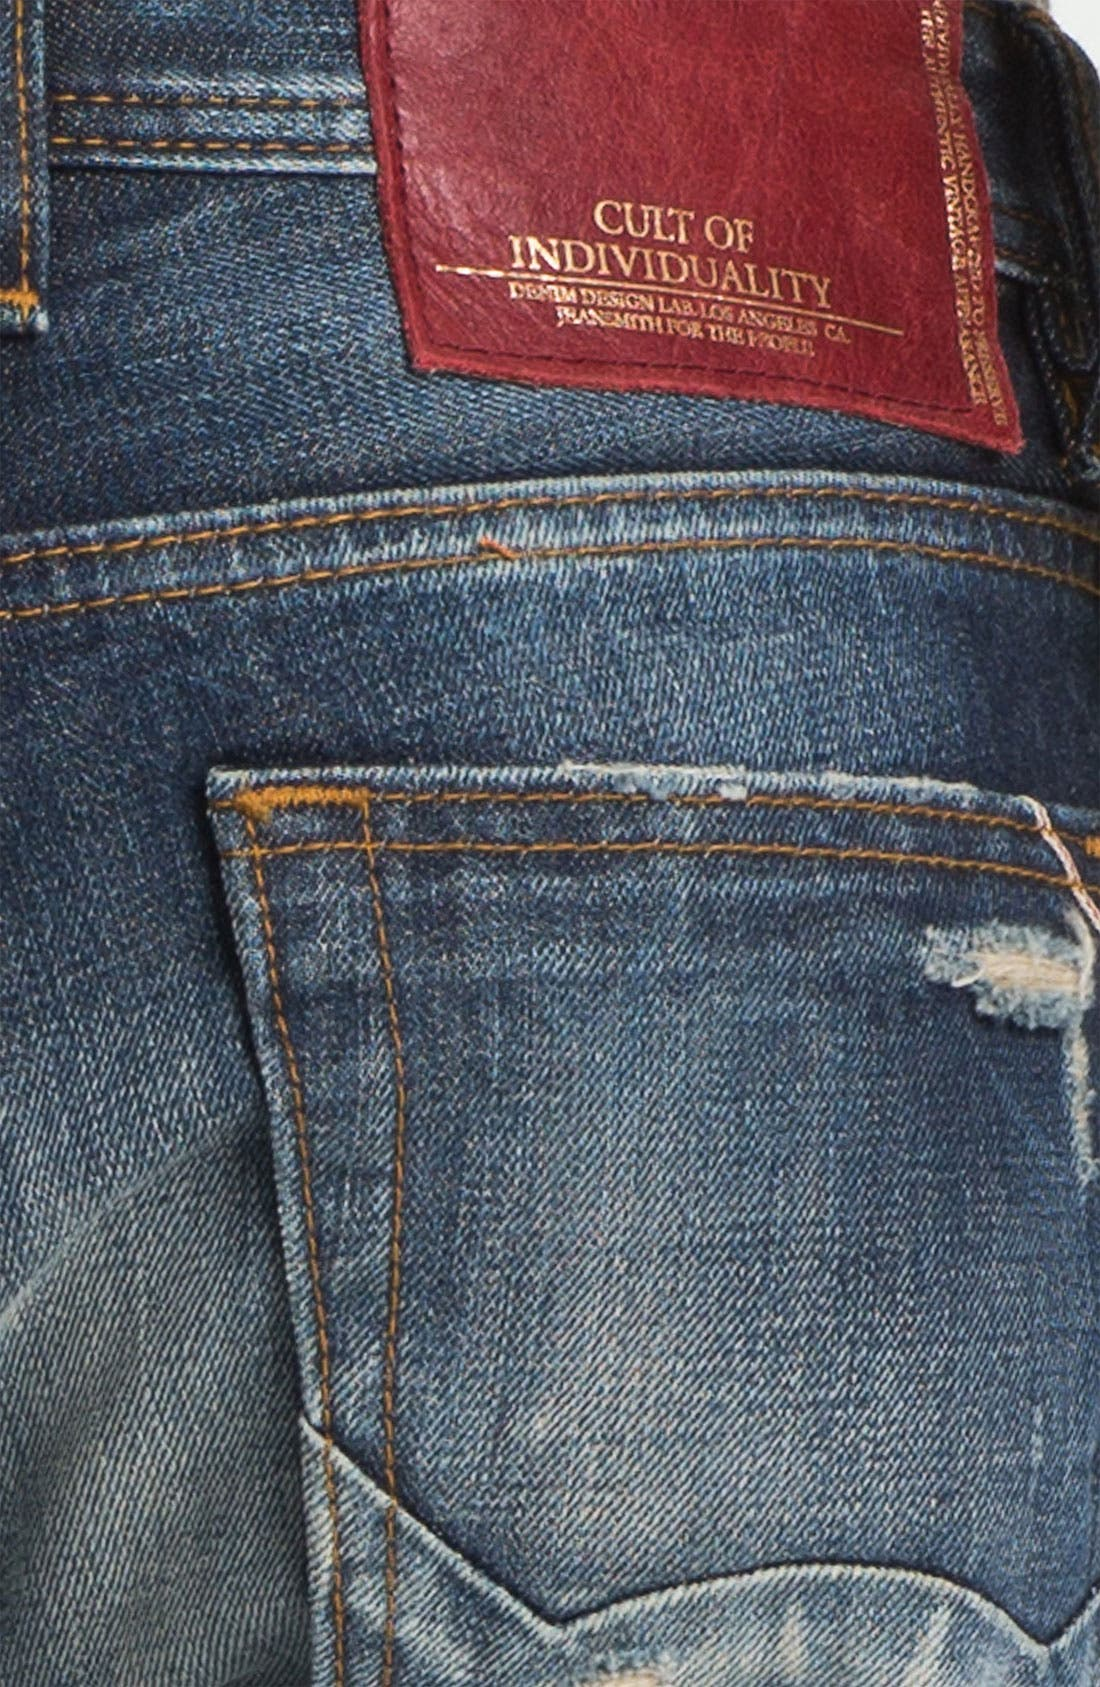 Alternate Image 4  - Cult of Individuality 'Hagen' Relaxed Straight Leg Jeans (15 Year Indigo)